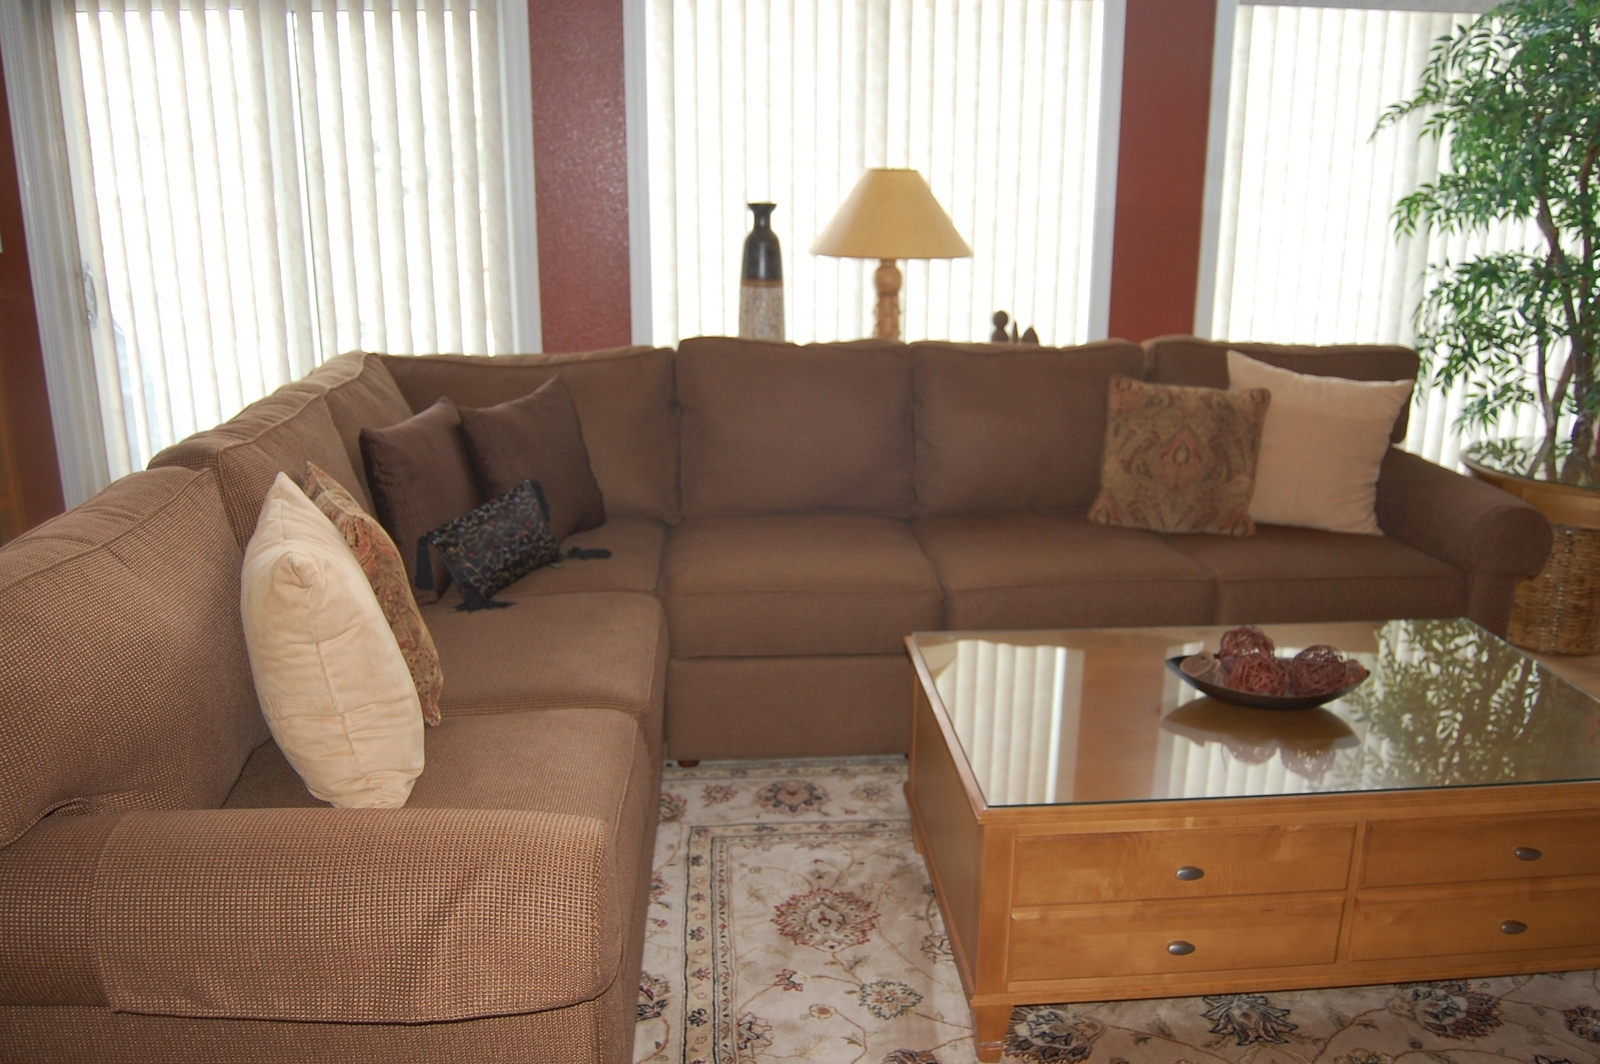 Furniture: Beige Ethan Allen Sectional Sofas With Feizy Rug And in Sectional Sofas at Ethan Allen (Image 4 of 10)